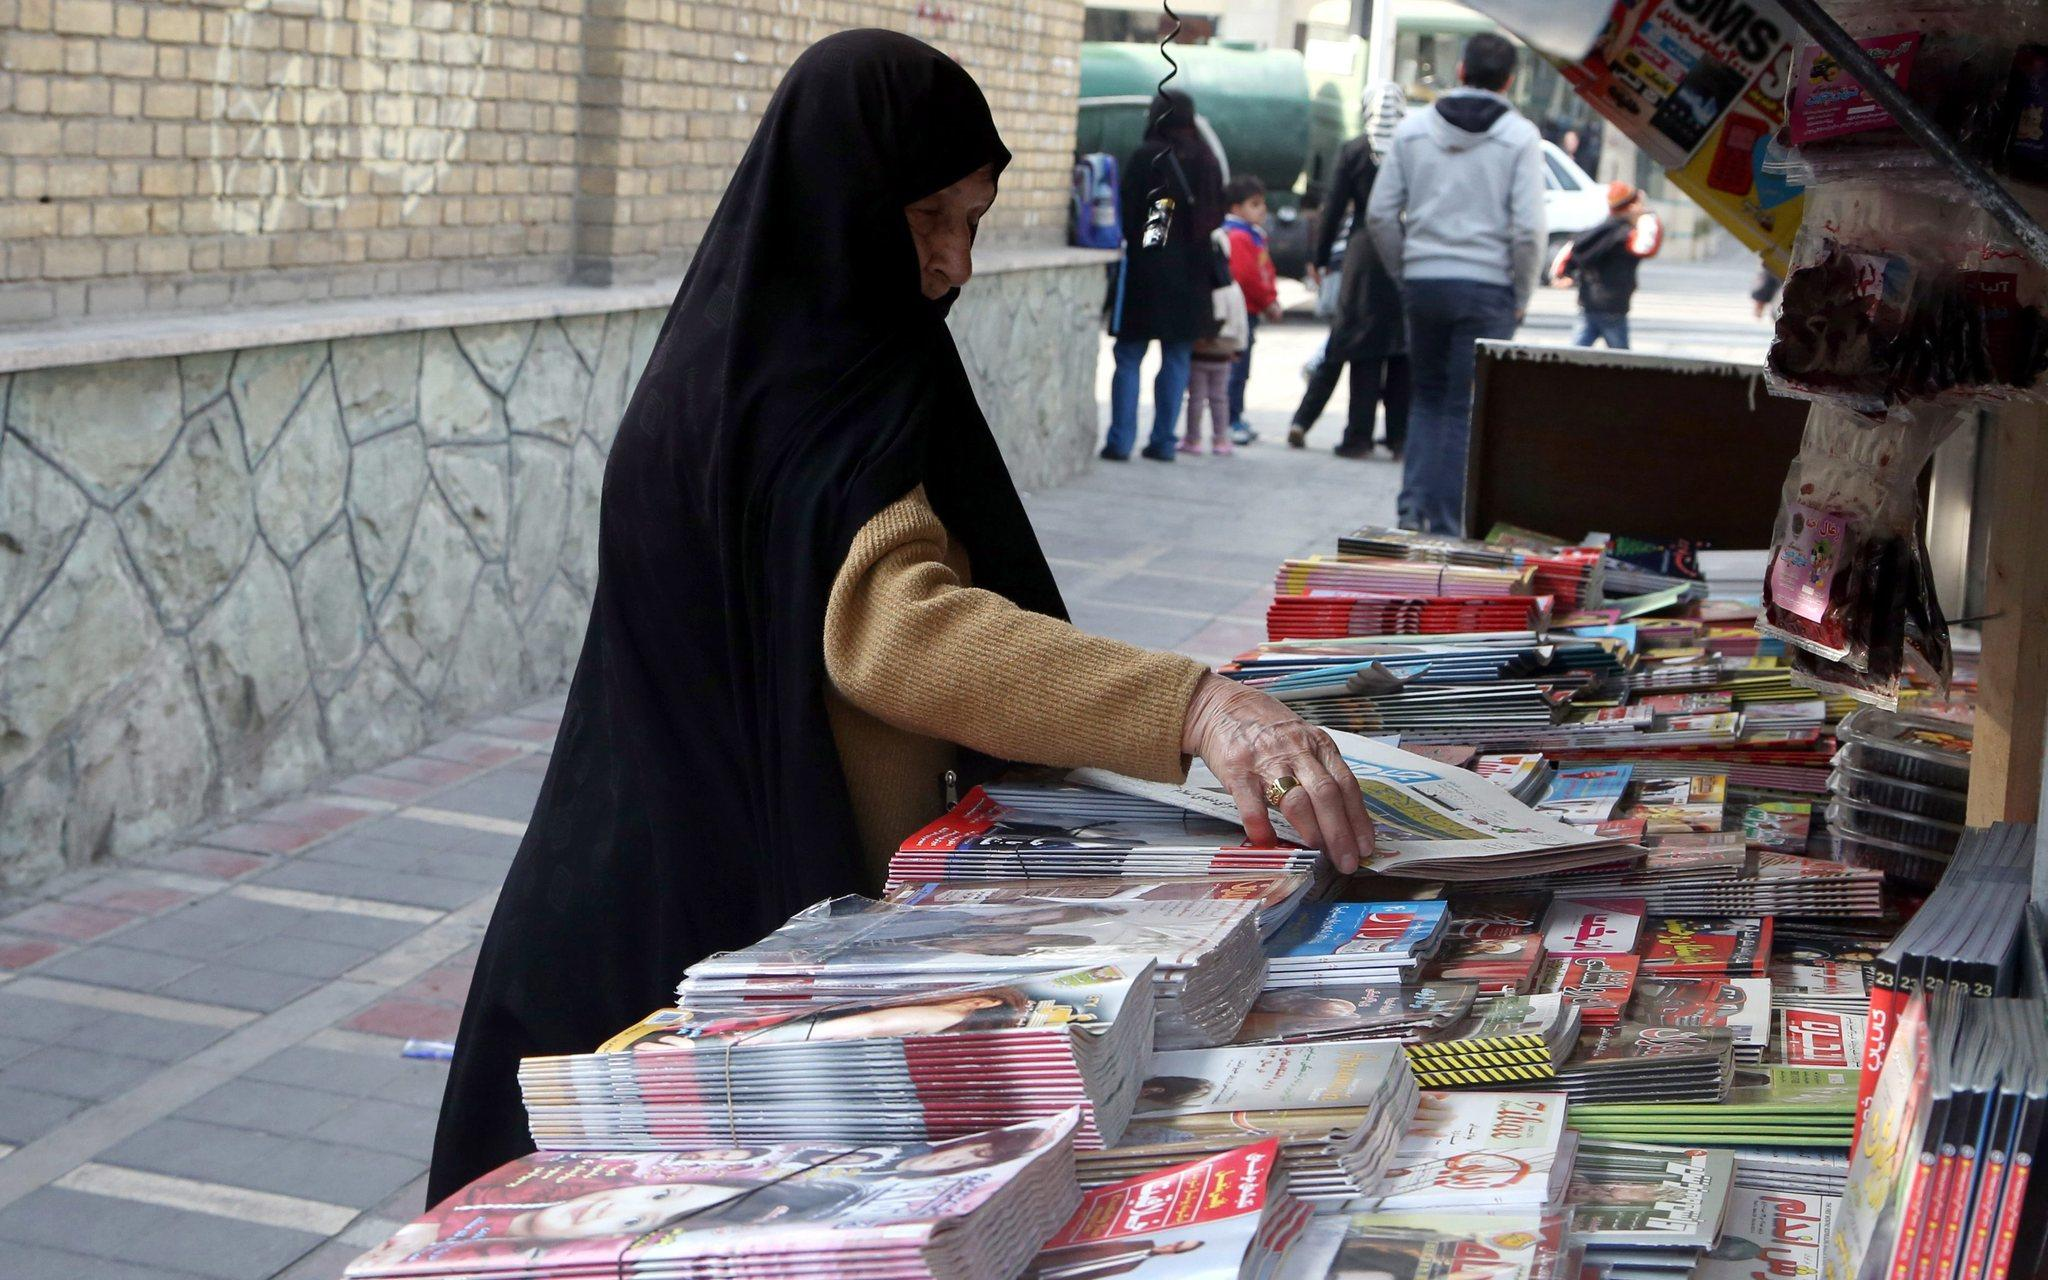 An Iranian woman looks at newspapers displayed at a kiosk in a Tehran street in January.